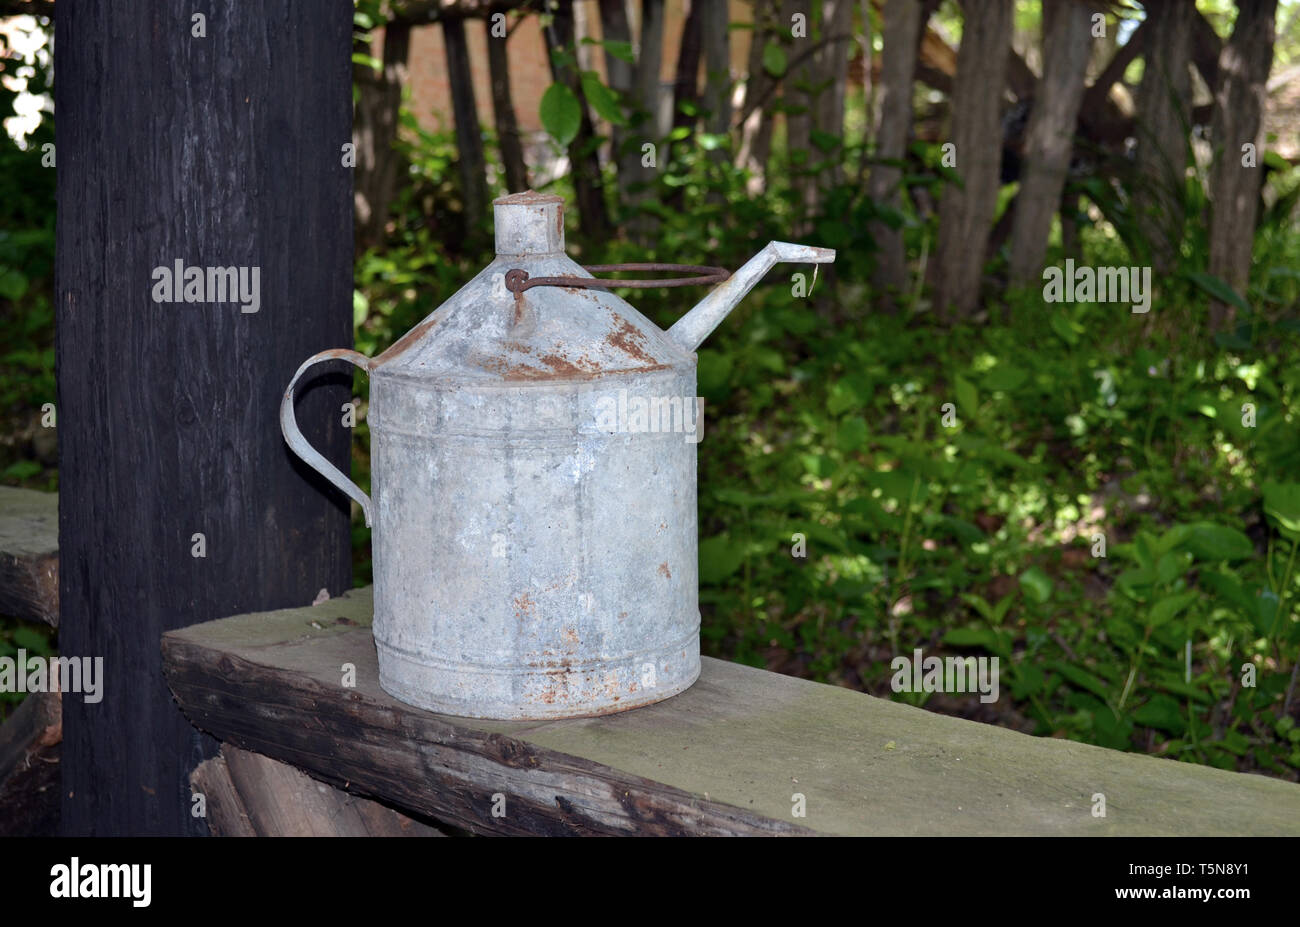 Ancient metal canister used for storing drinks - Stock Image